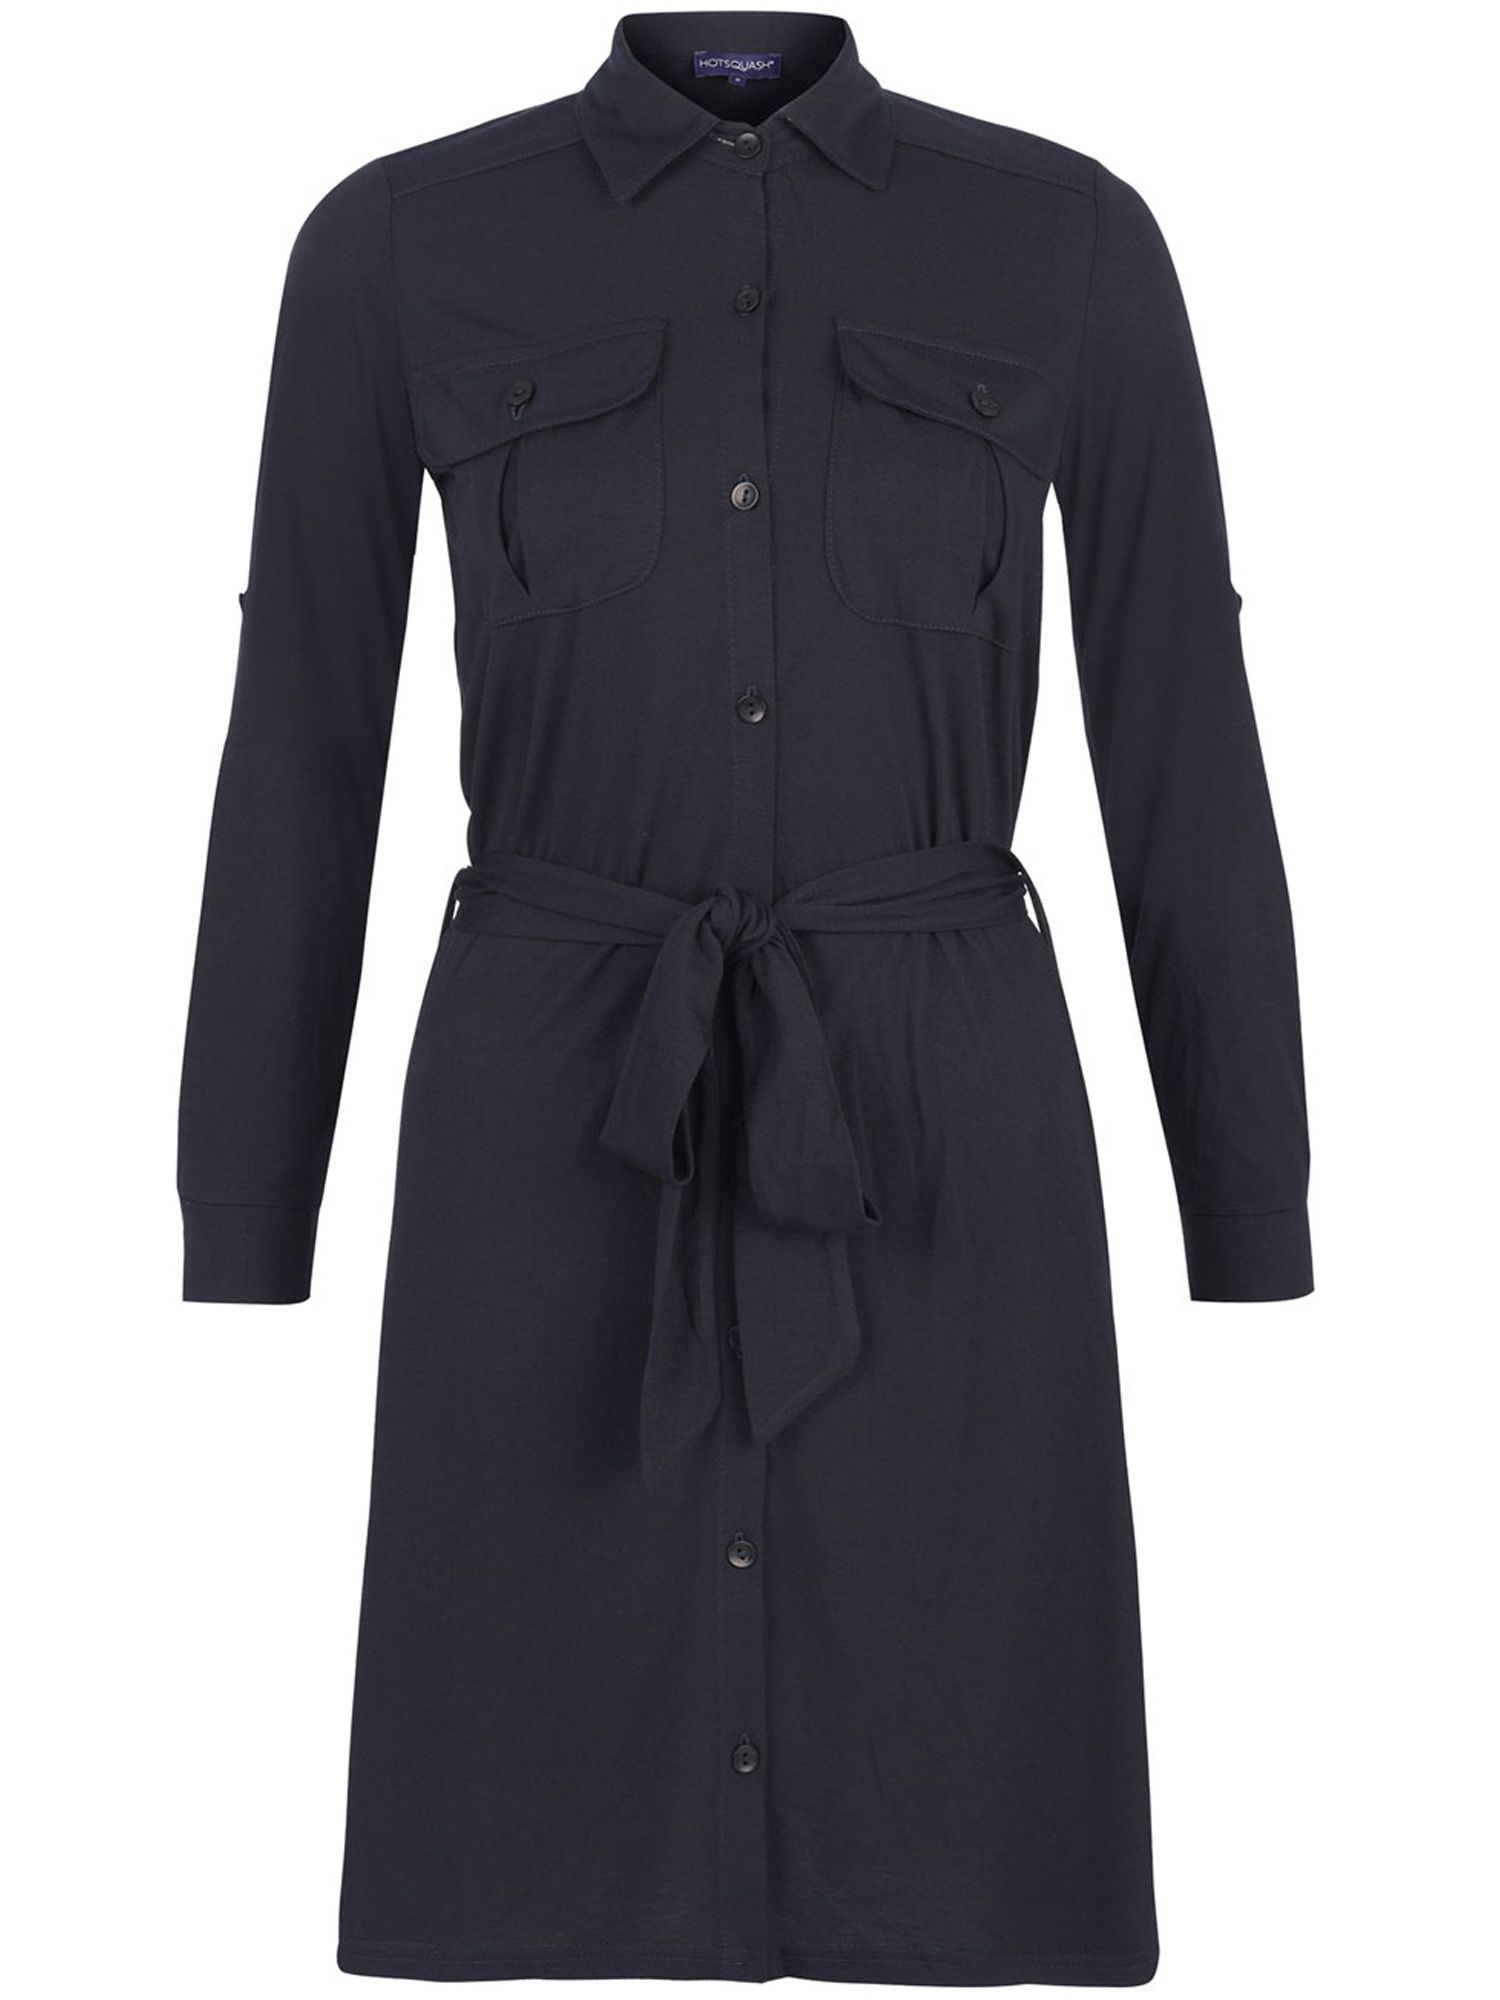 Coolfresh shirt dress